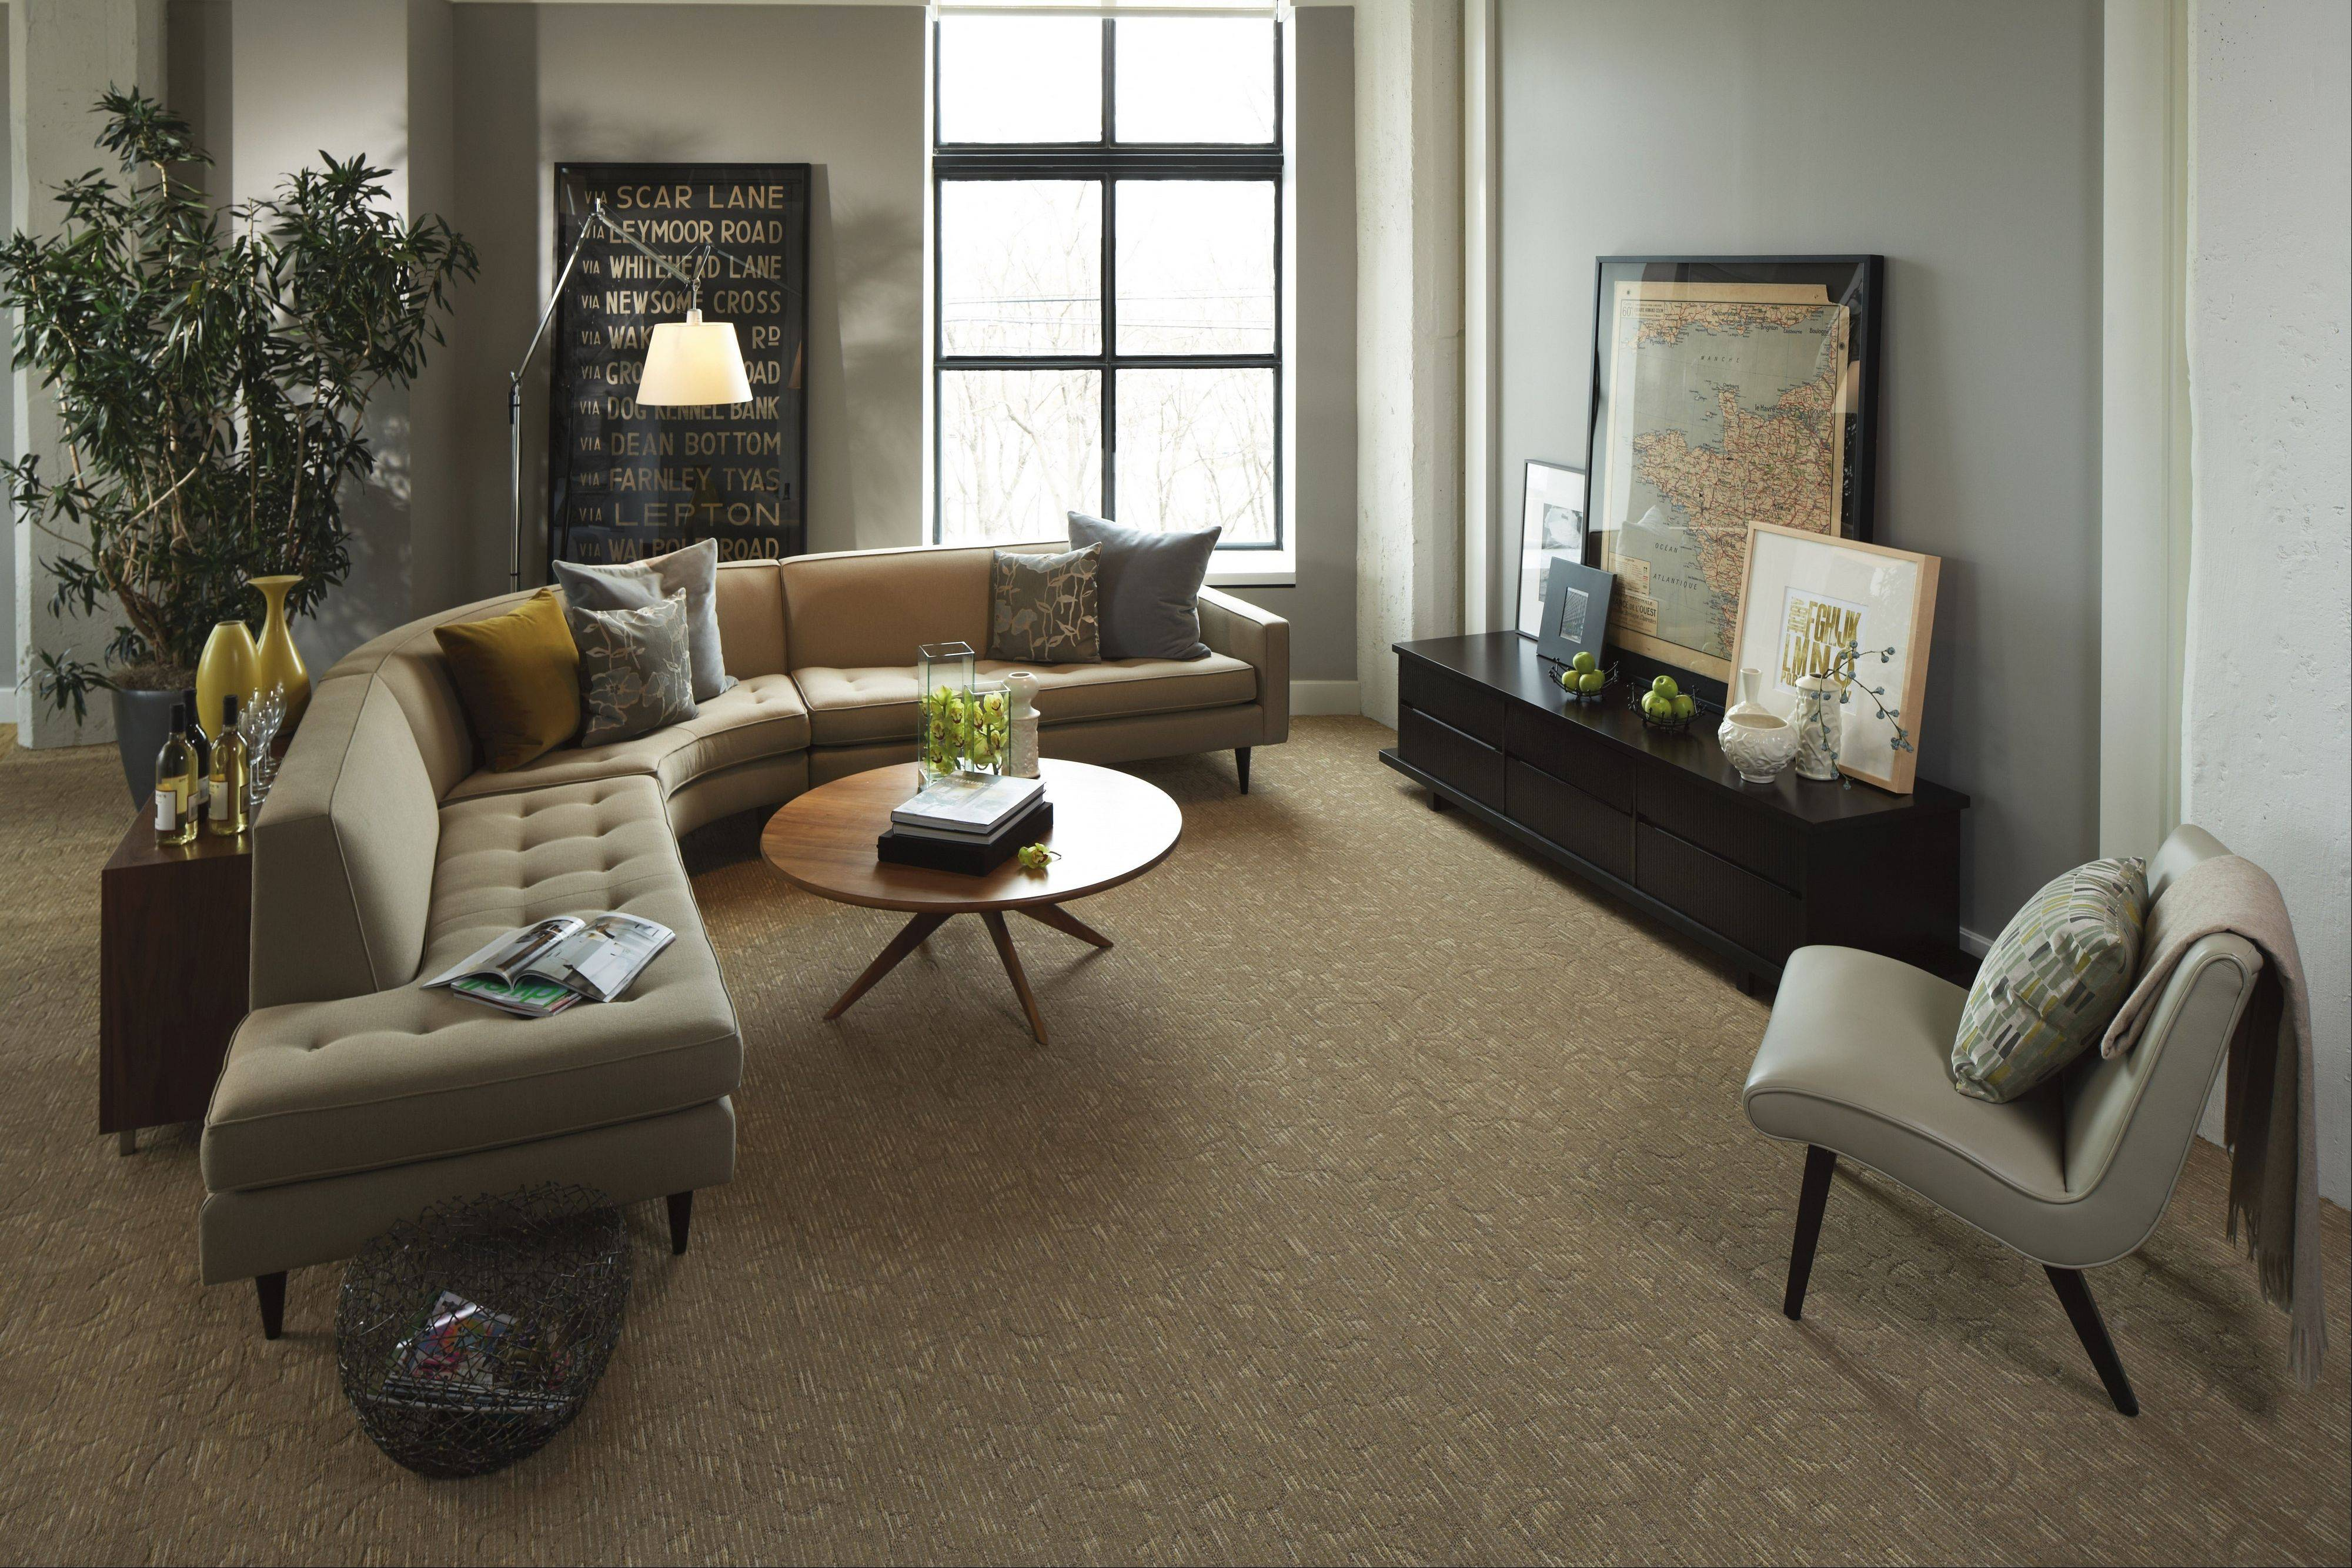 Many homeowners select a classic pattern carpet that hides traffic patterns and gives the room a little bit of interest, said Lisa Carlson Nelson, owner of Carlson's Flooring in Geneva.